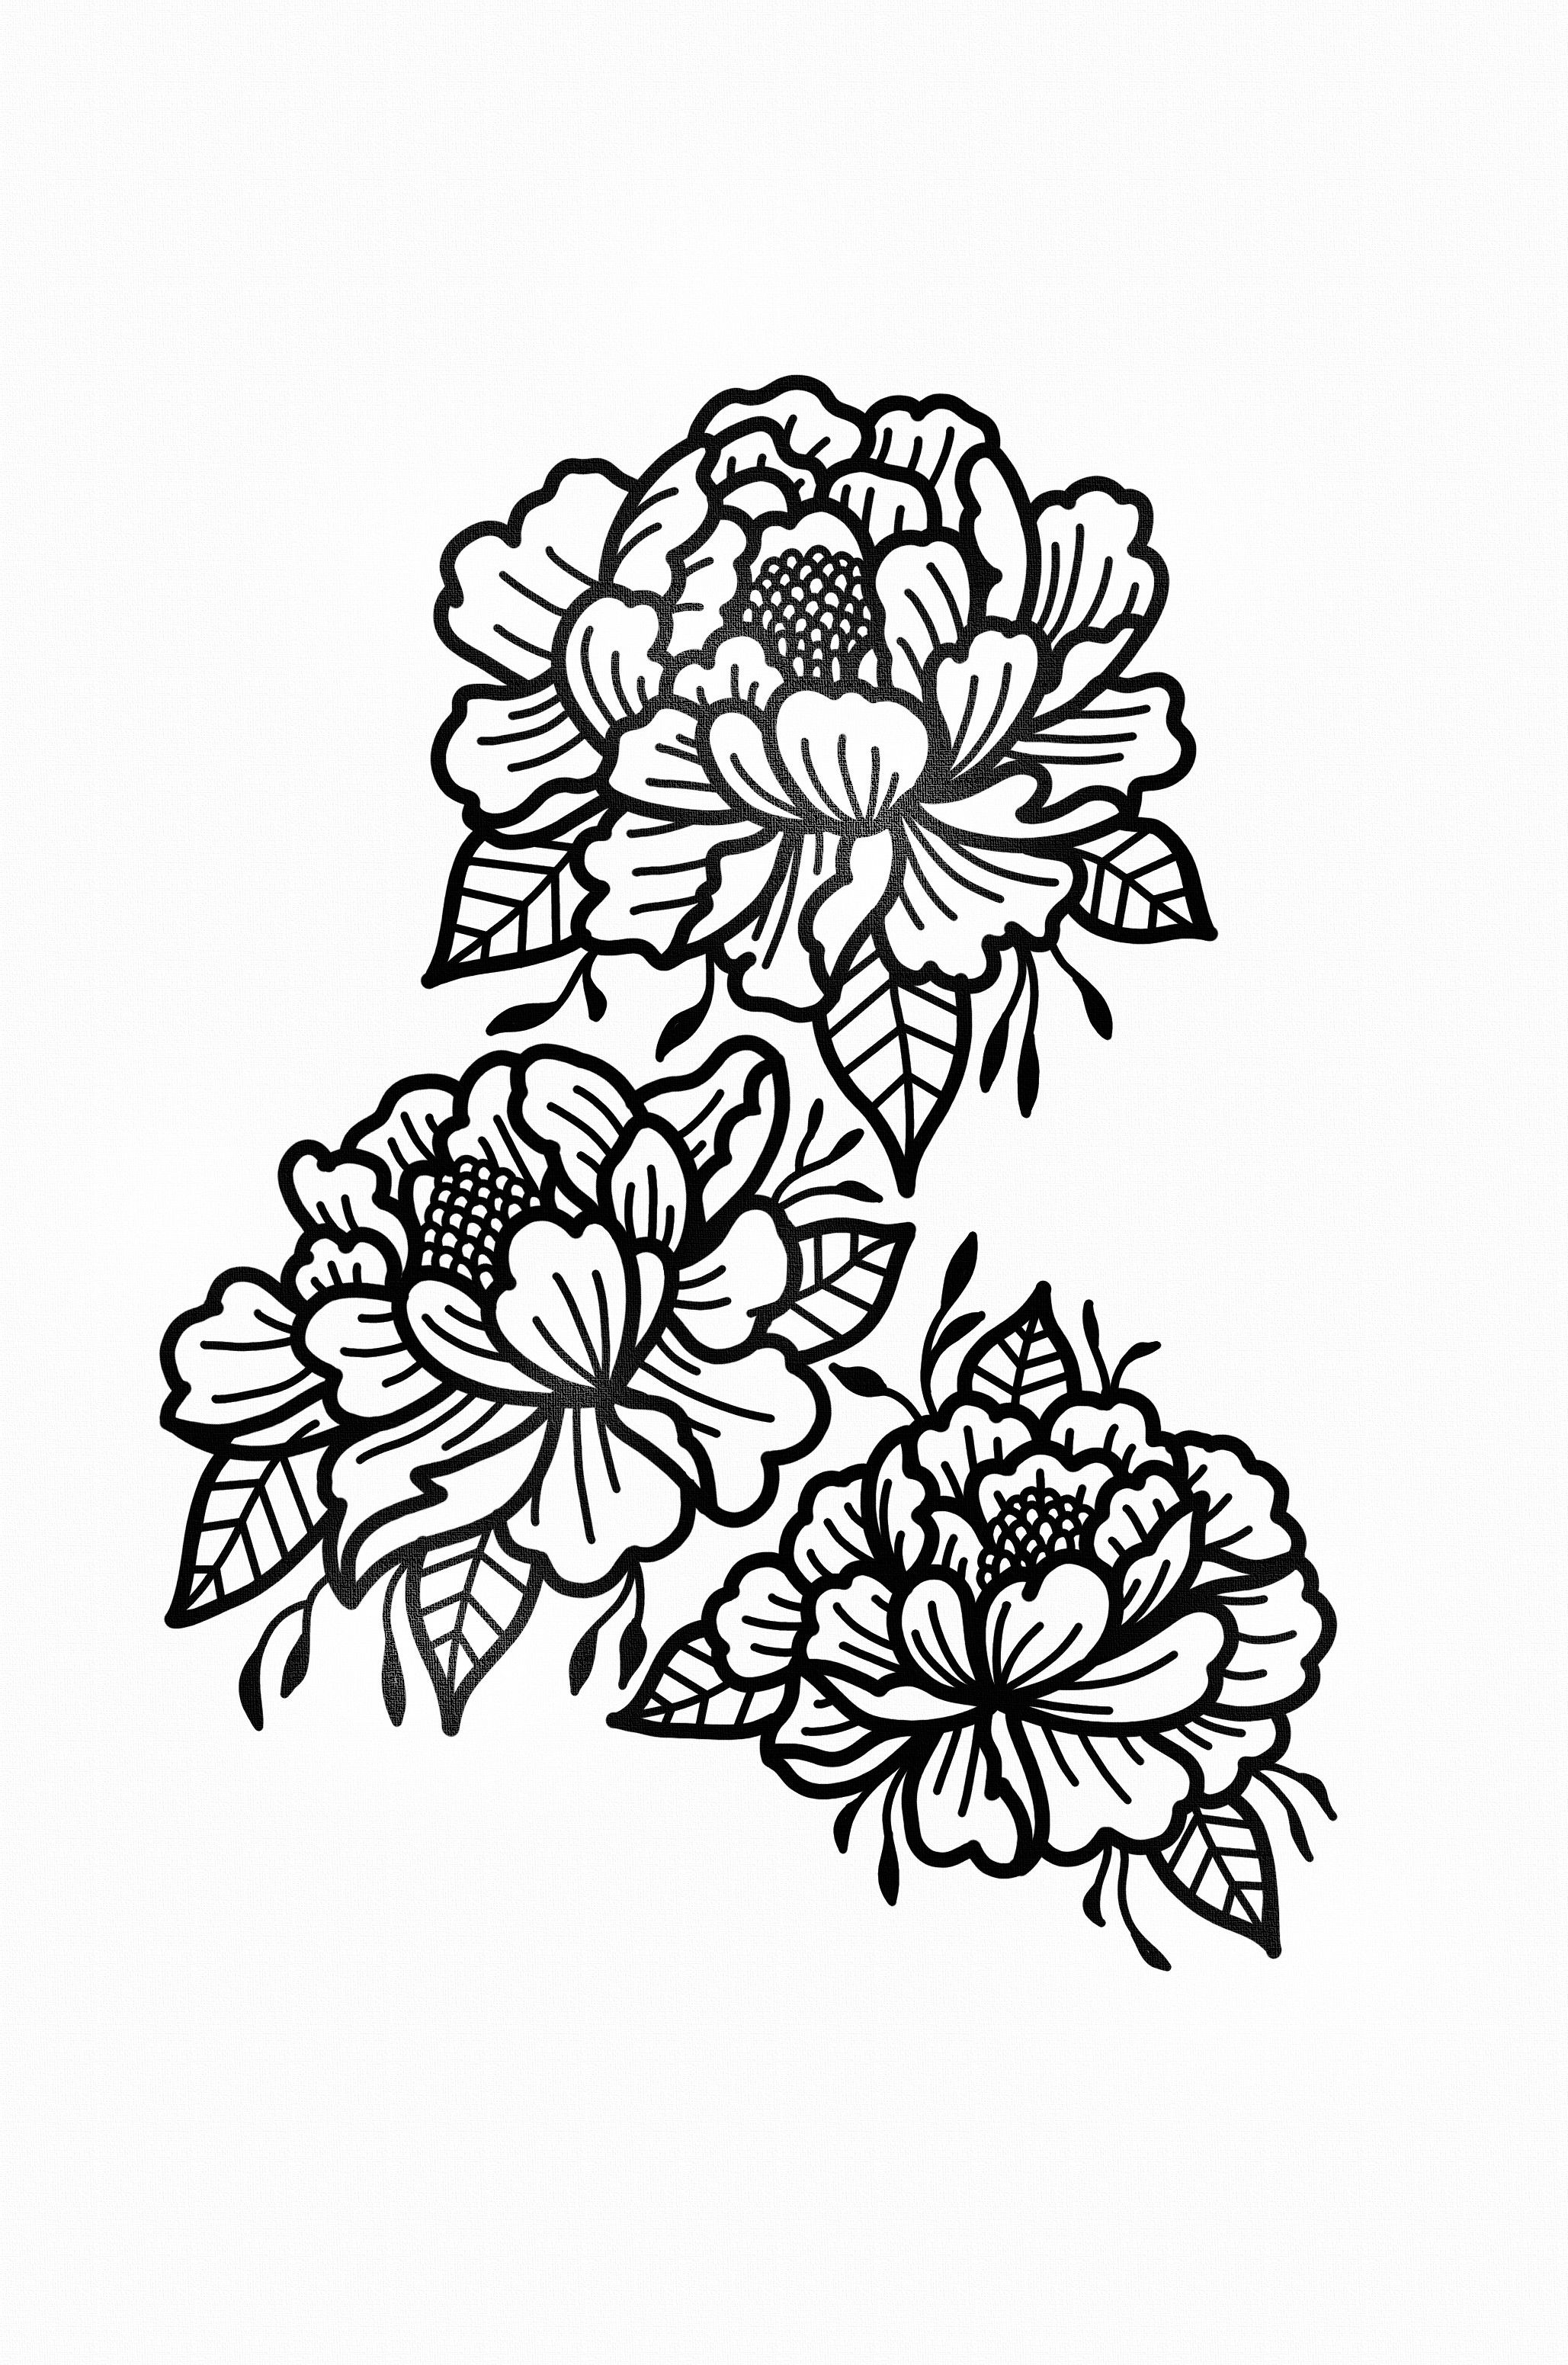 Stanley Duke Tattoo Design Flowers Art Tattooist Graphic